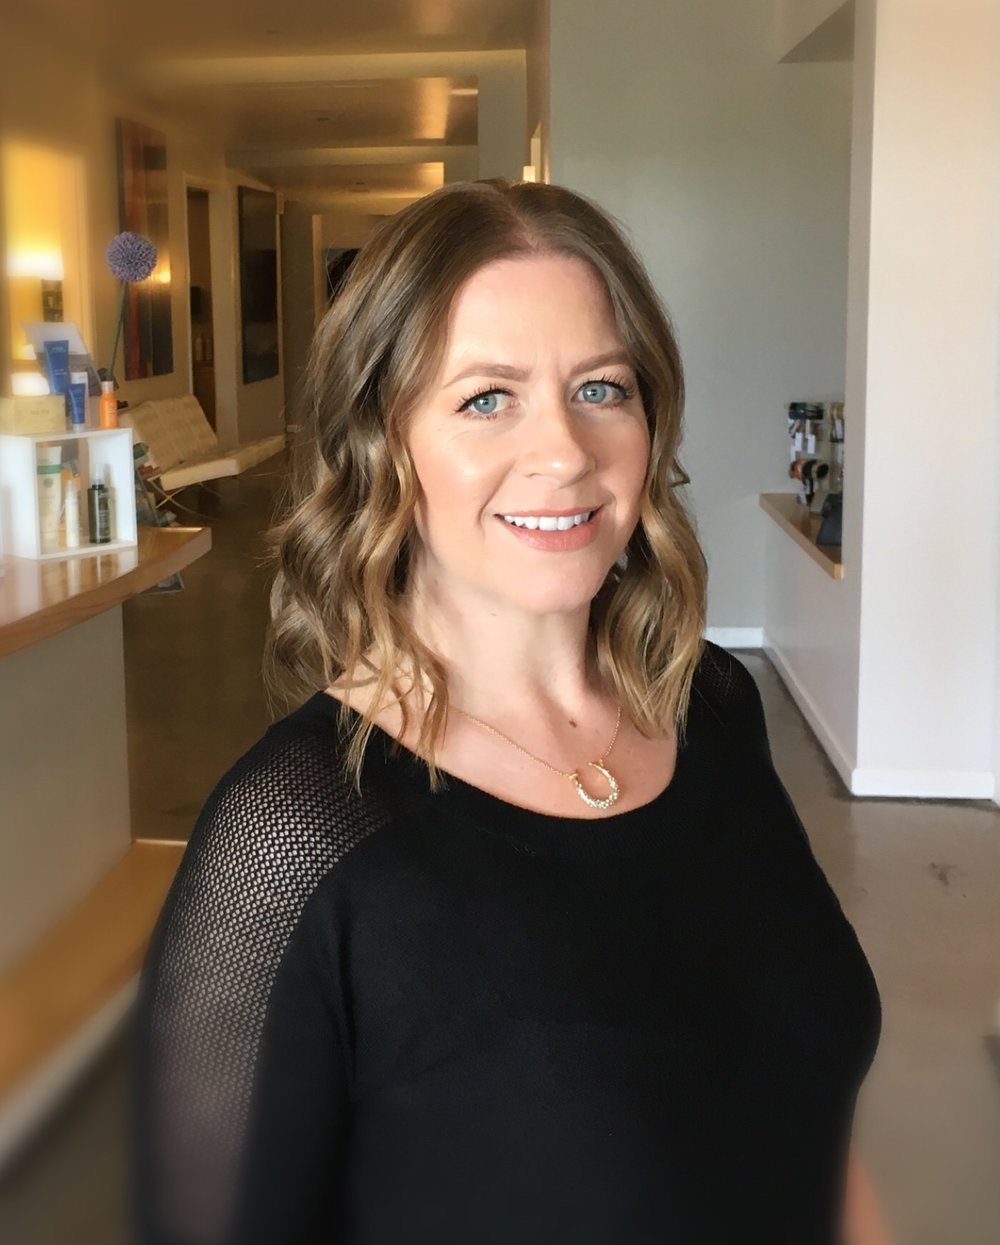 Megan - Megan joined NH2 in 2017. With a strong background in elevated customer service, Megan handles the daily front-end operations at NH2. Megan is detail oriented and precise. Her love of beauty products and services lends beautifully supporting guests exceeding their beauty goals.